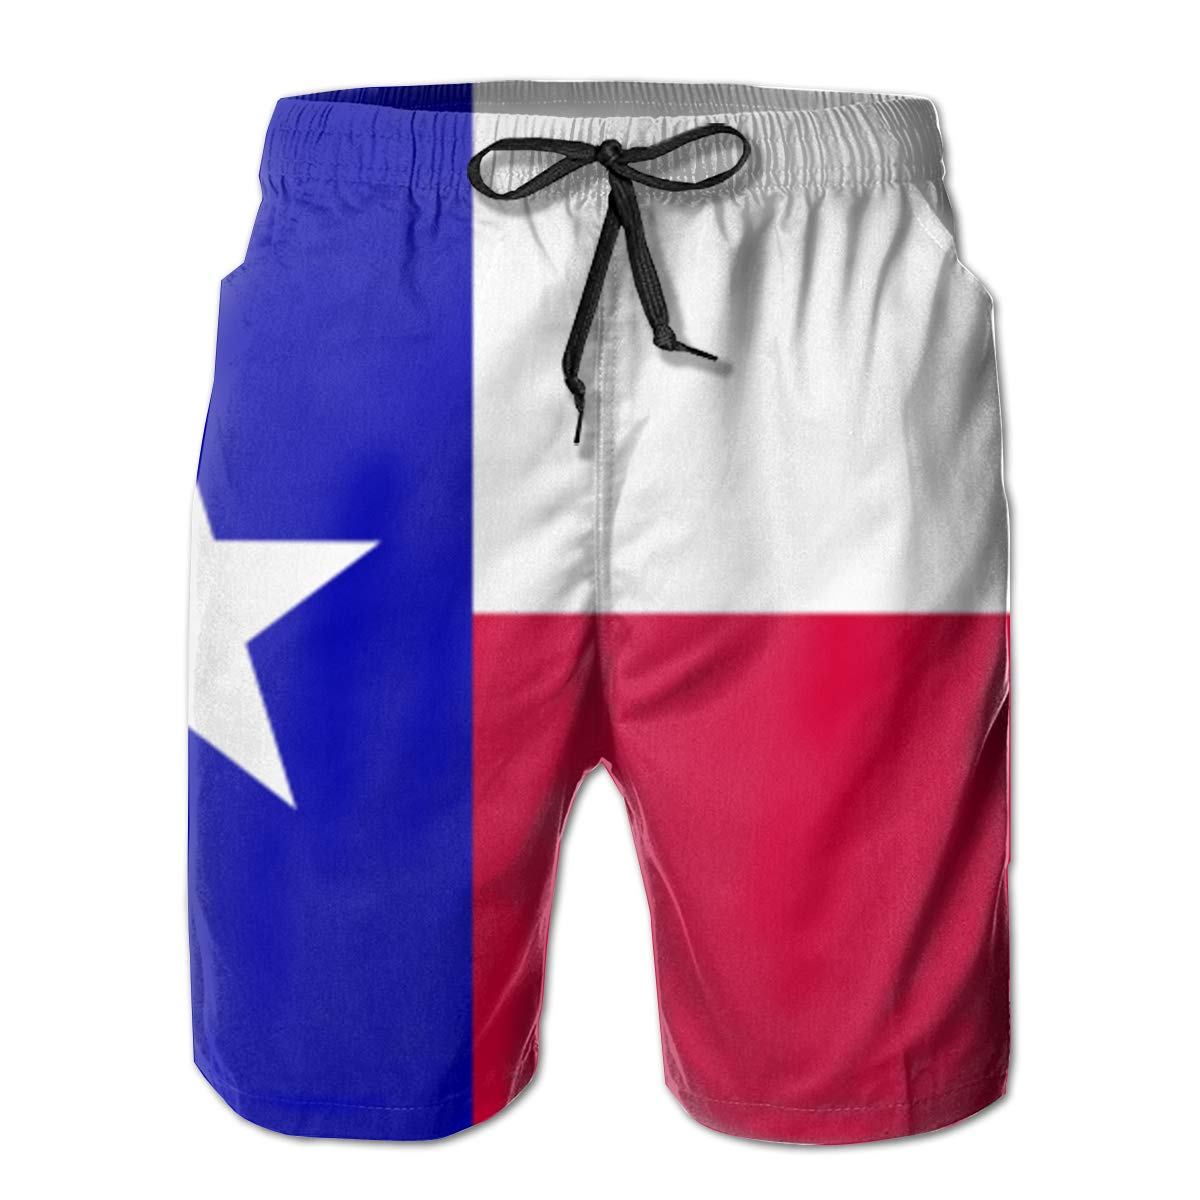 TR2YU7YT State of Texas Flag Casual Mens Swim Trunks Quick Dry Printed Beach Shorts Summer Boardshorts Bathing Suits with Mesh Lining